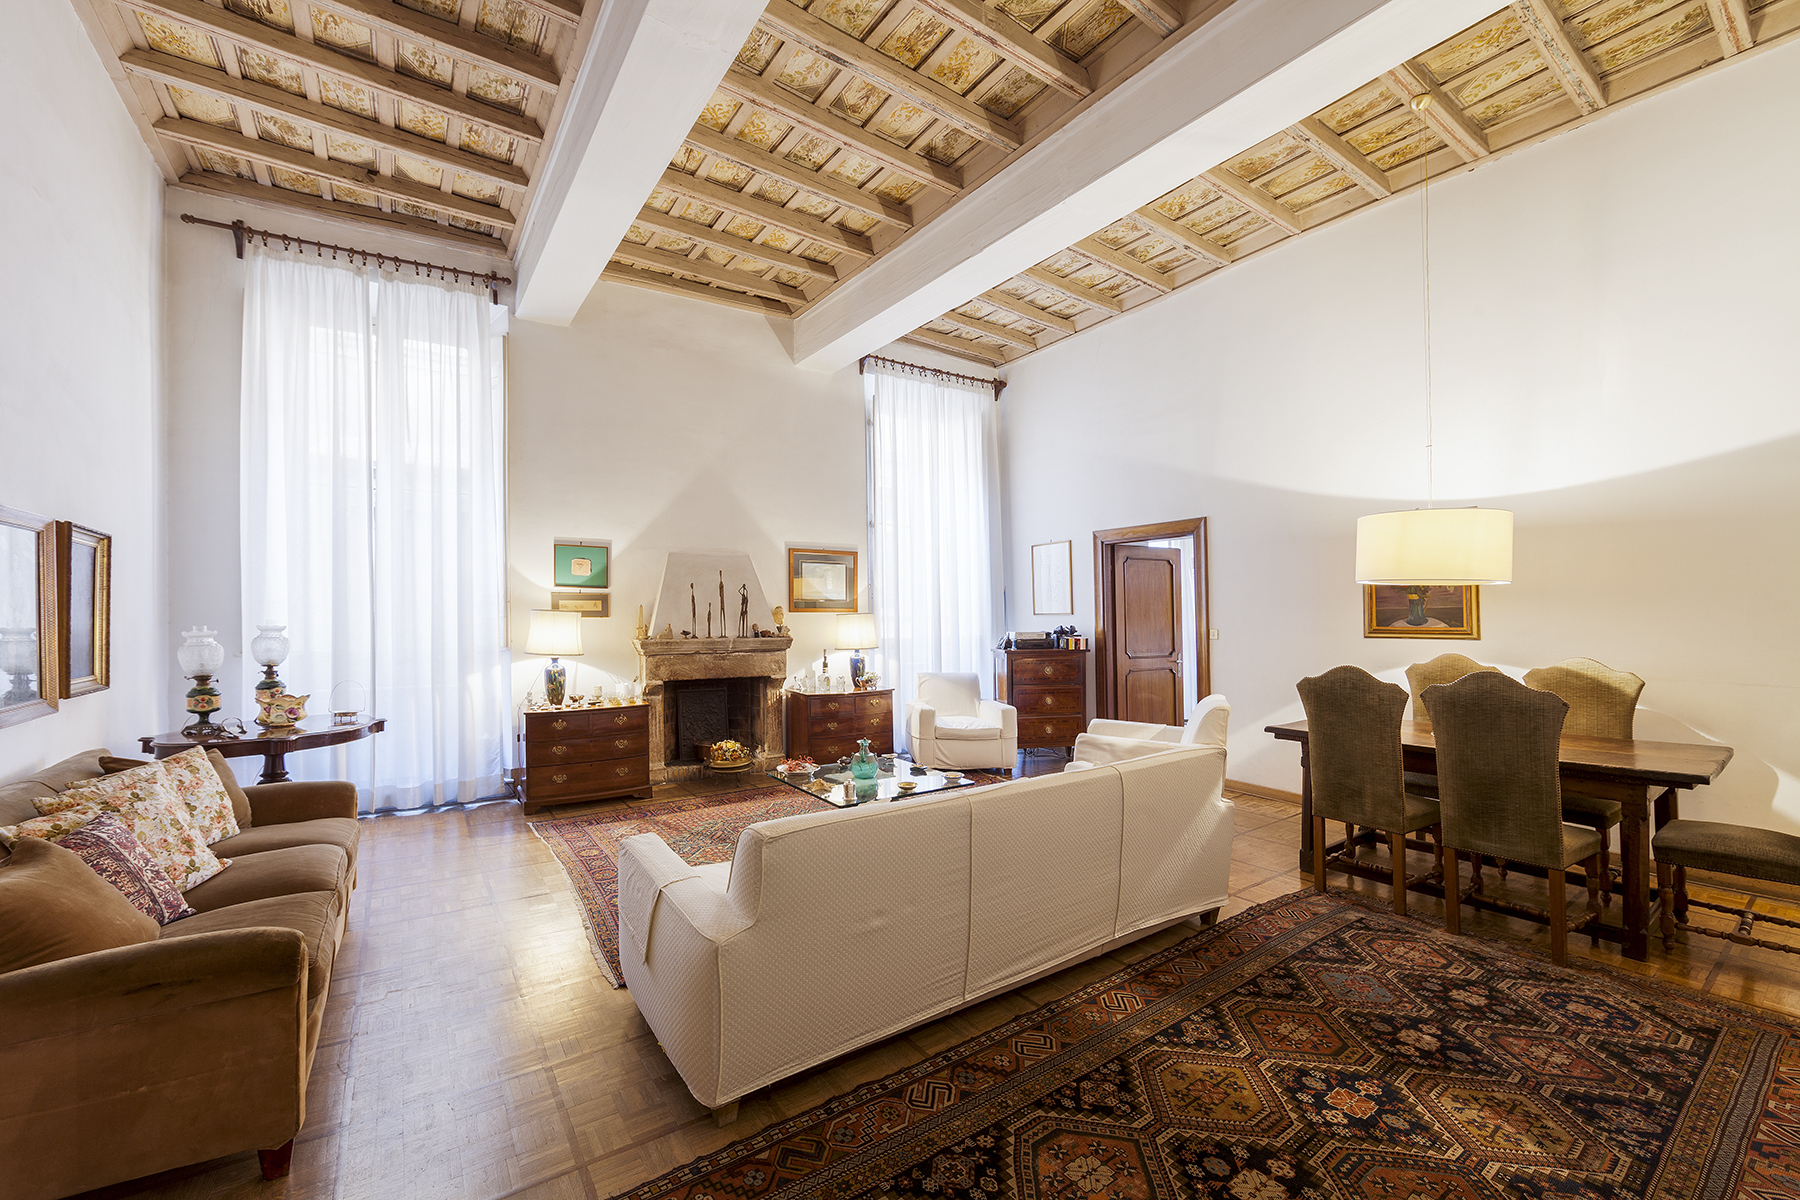 Property for Sale at Magnificent apartment of great charm Rome, Rome Italy